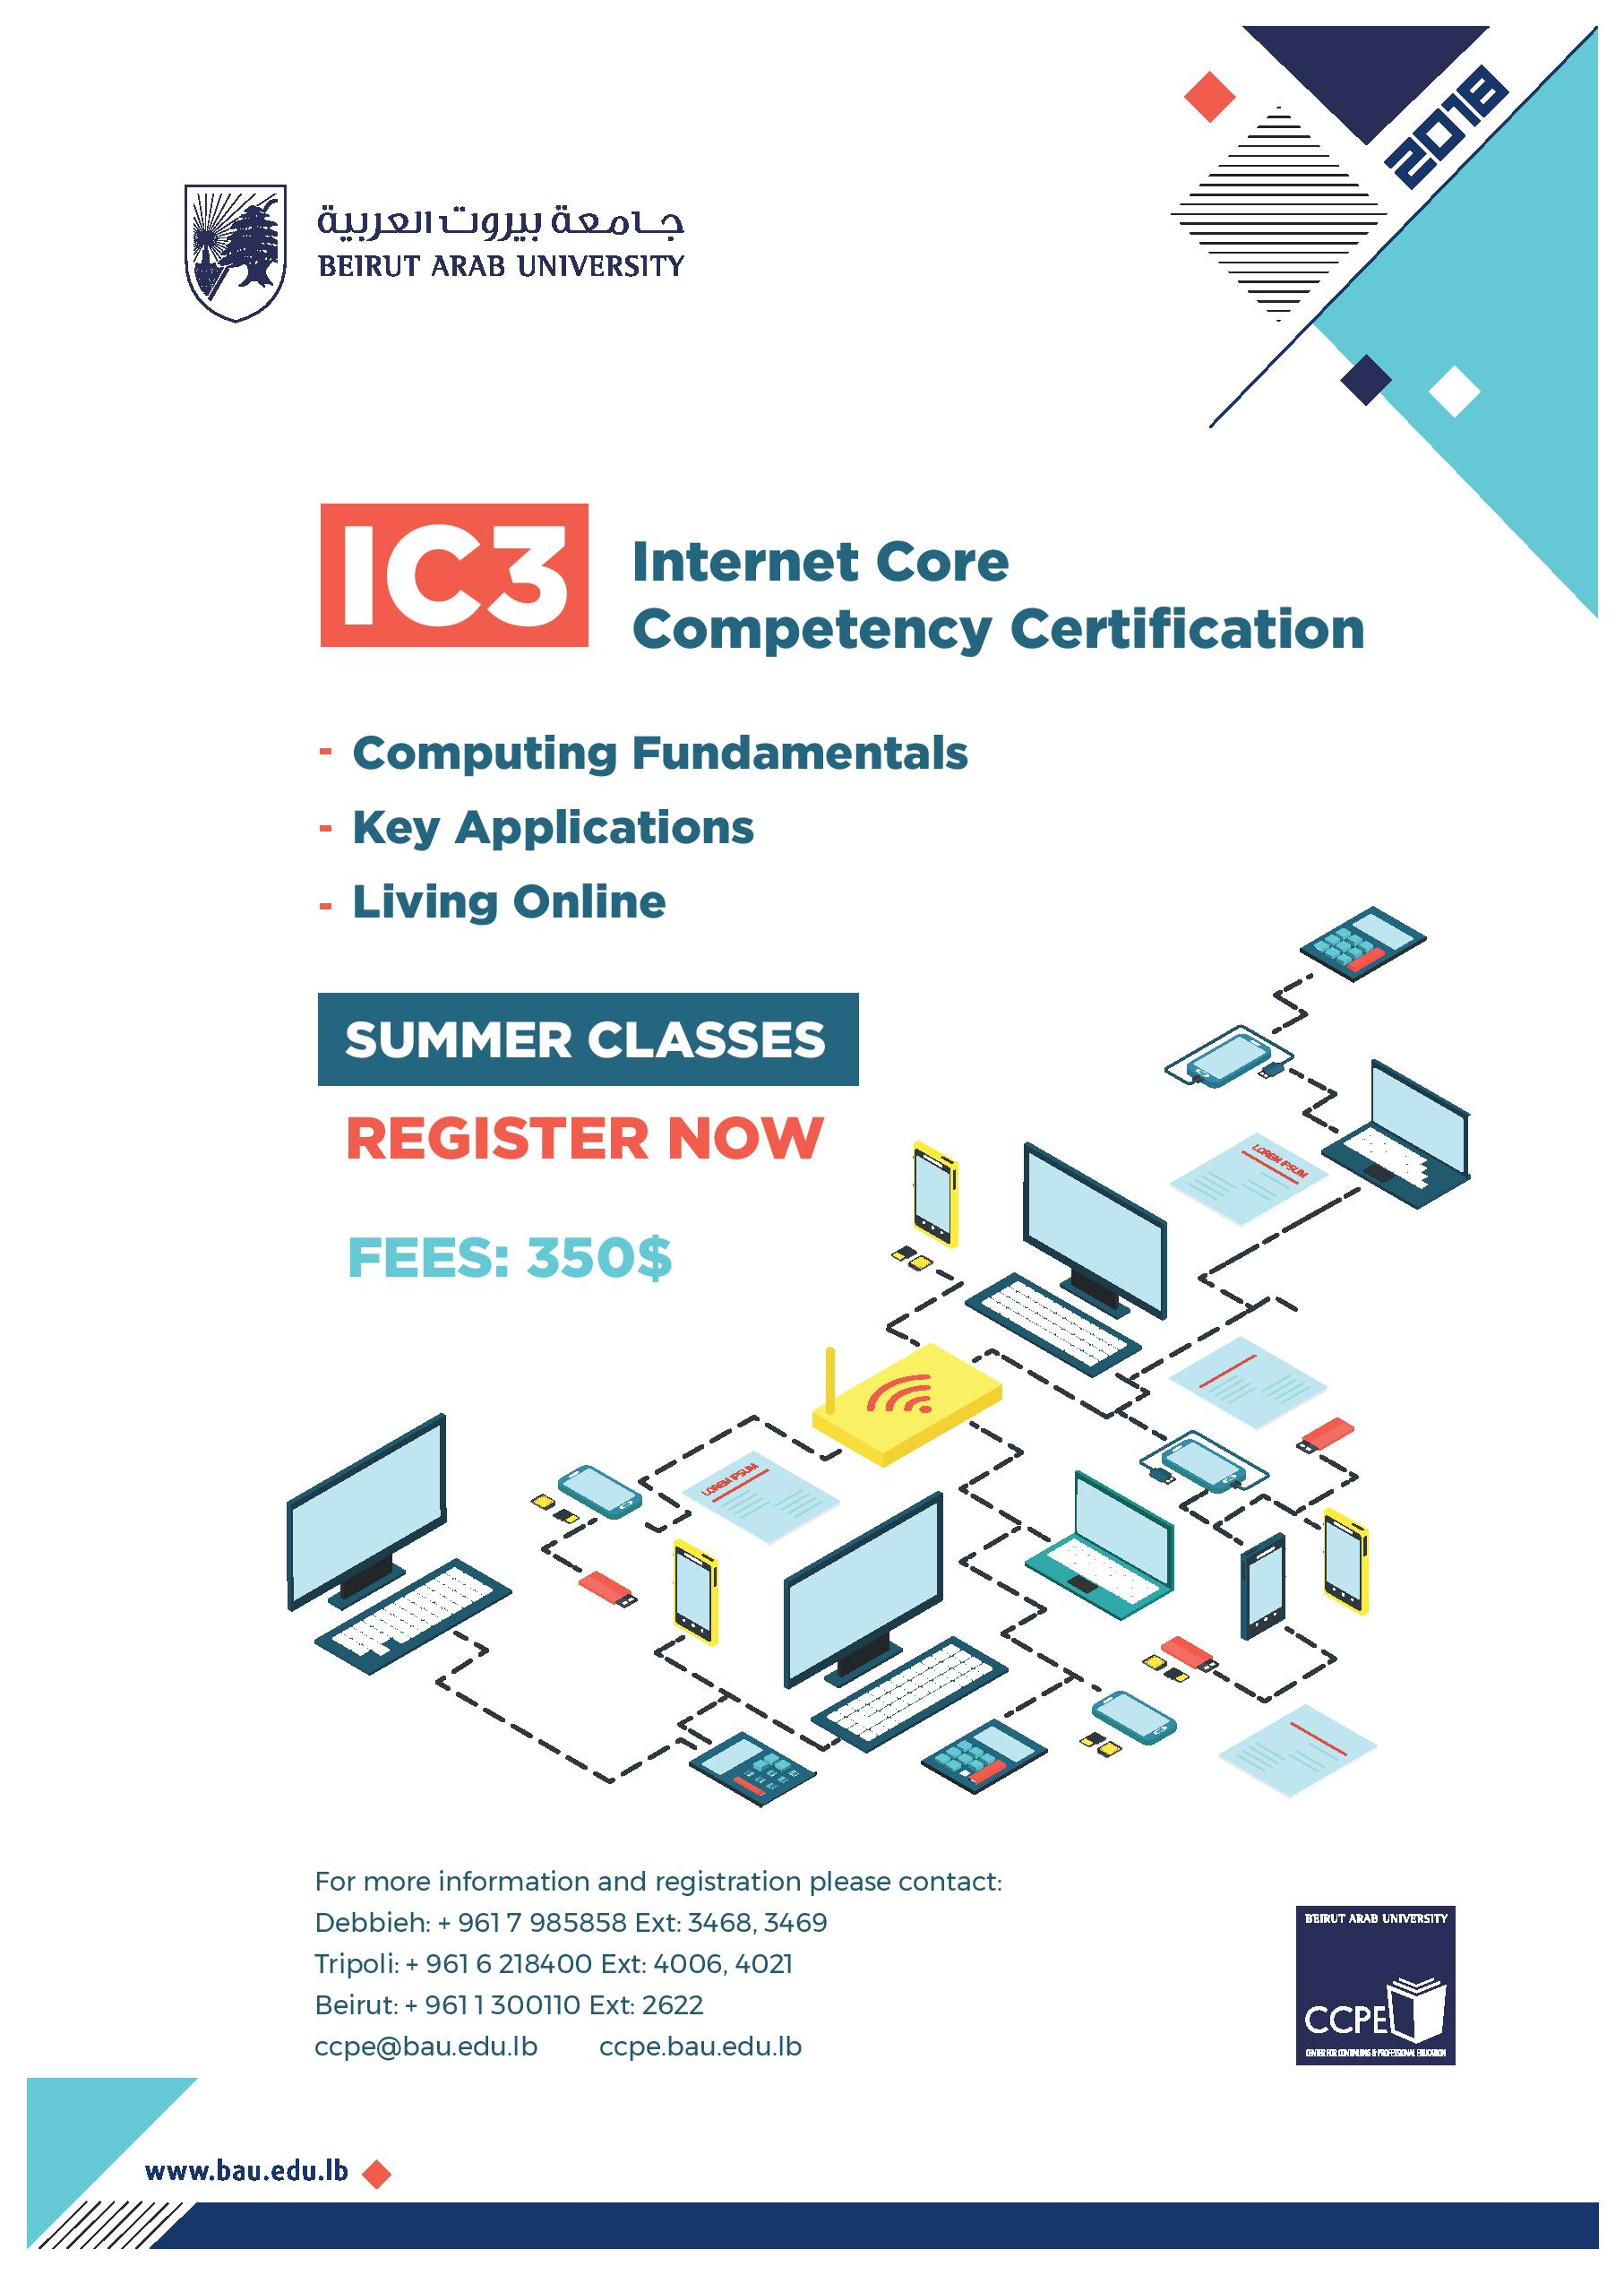 IC3 ( Internet Core Competency Certification )